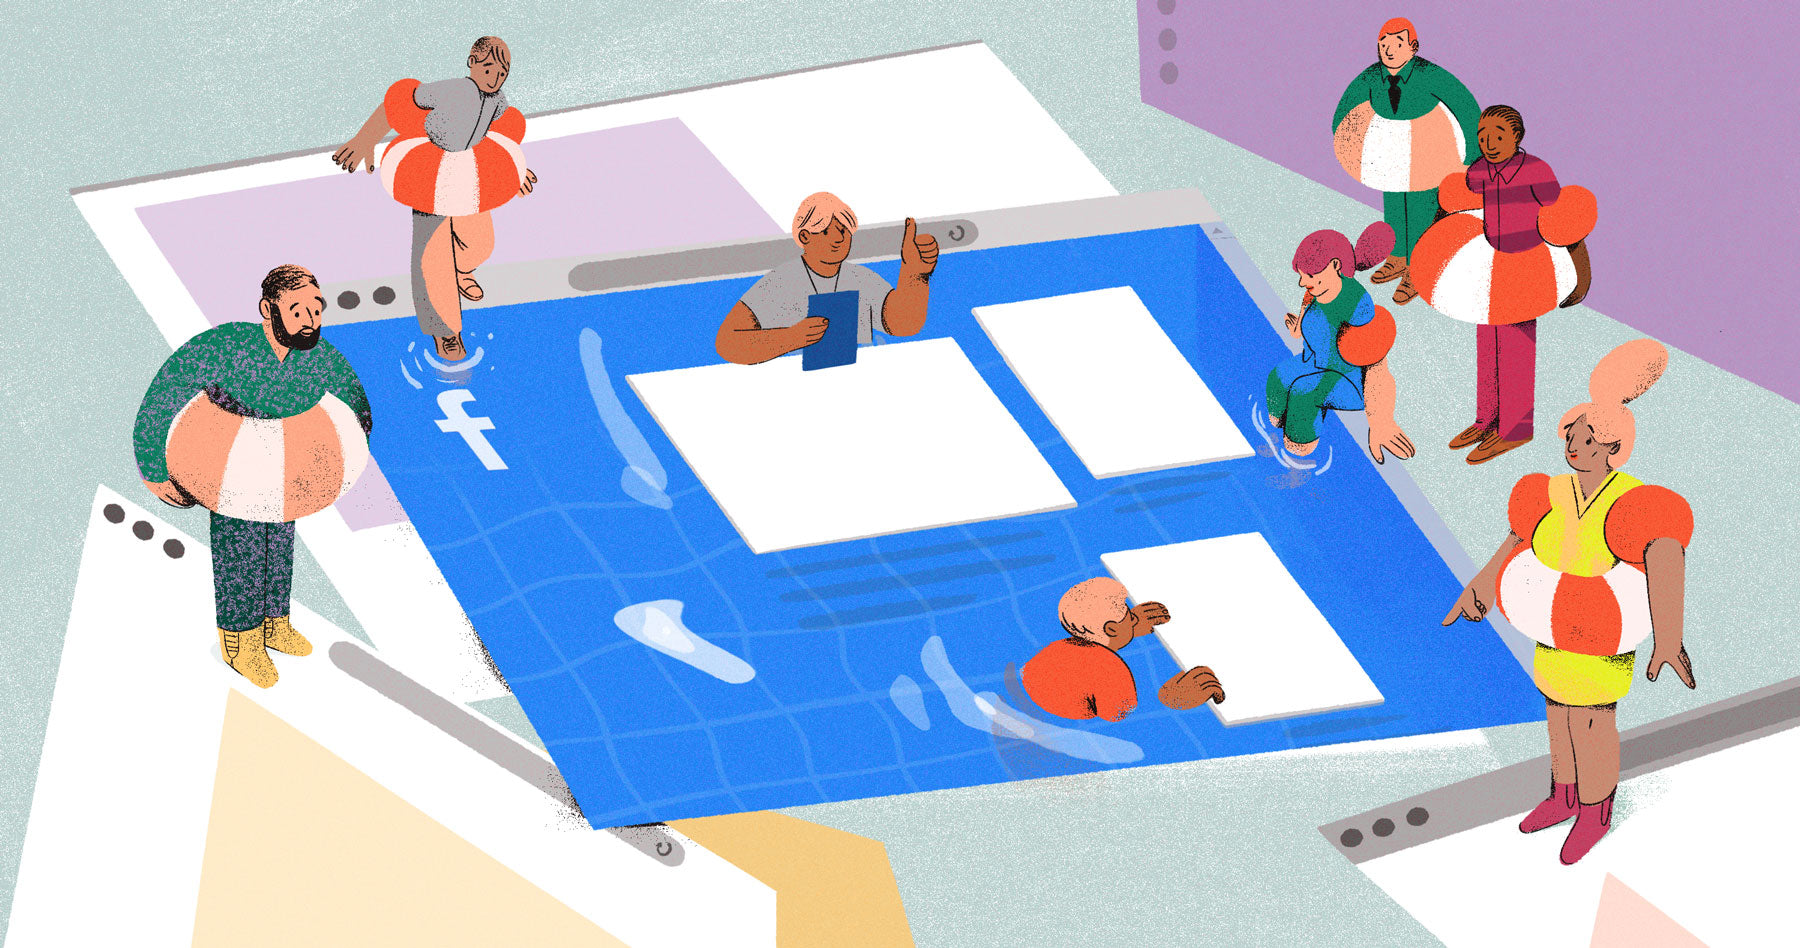 Illustration of a pool in the shape of a Facebook homescreen. We see a swimming instructor in the pool and beginner-swimmers around the pool with life preservers on, as a metaphor for those being given a step by step guide to facebook ads.